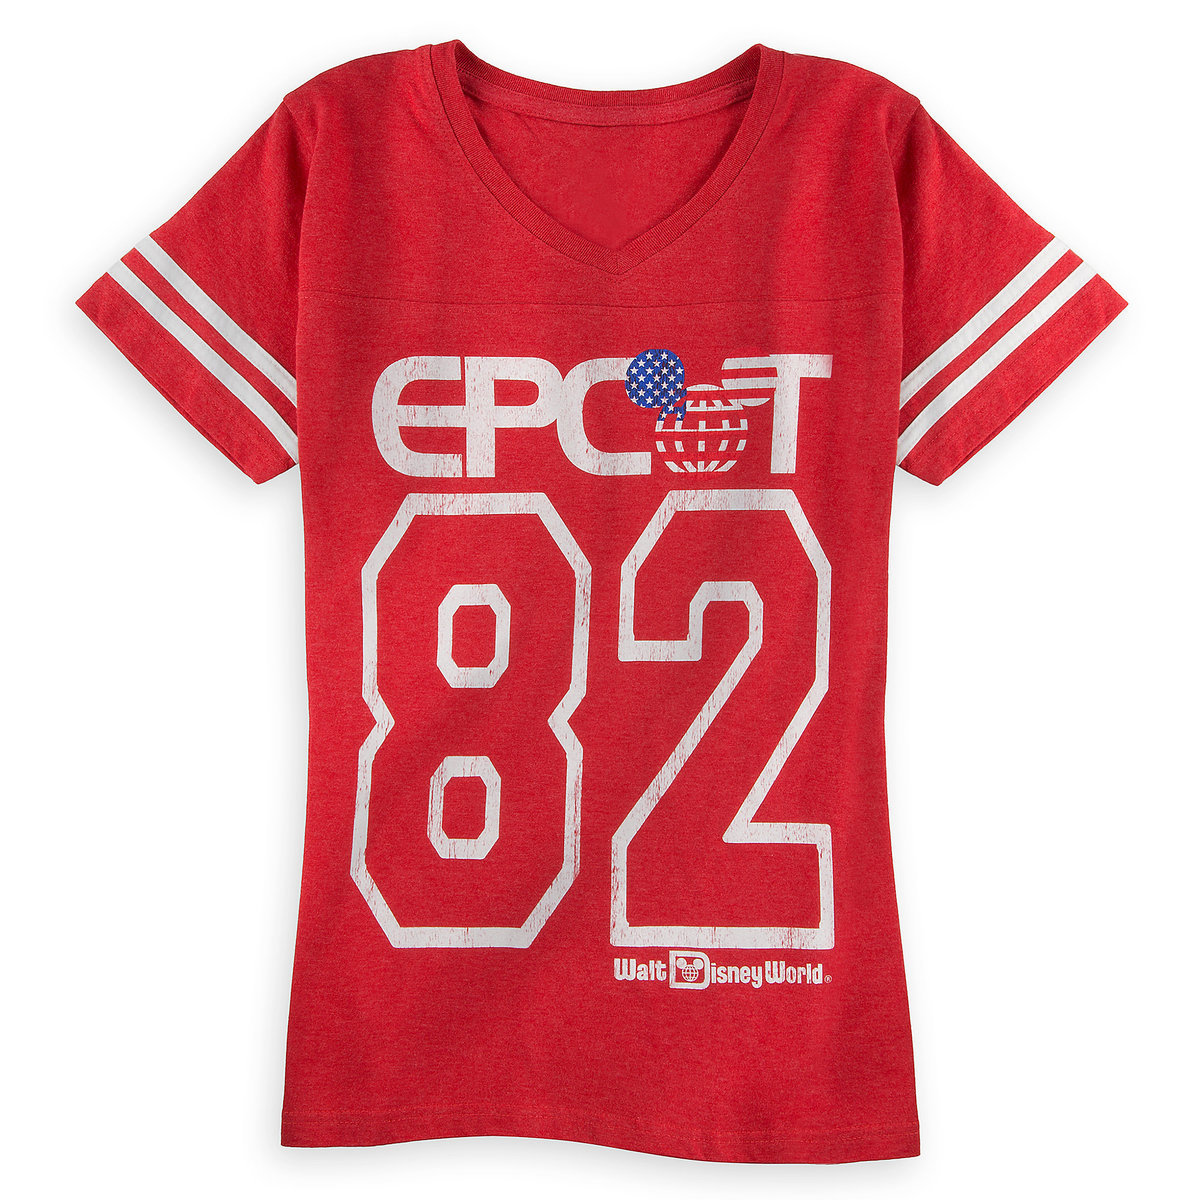 9c41c1a29 Product Image of Epcot Tee for Women - Walt Disney World # 1